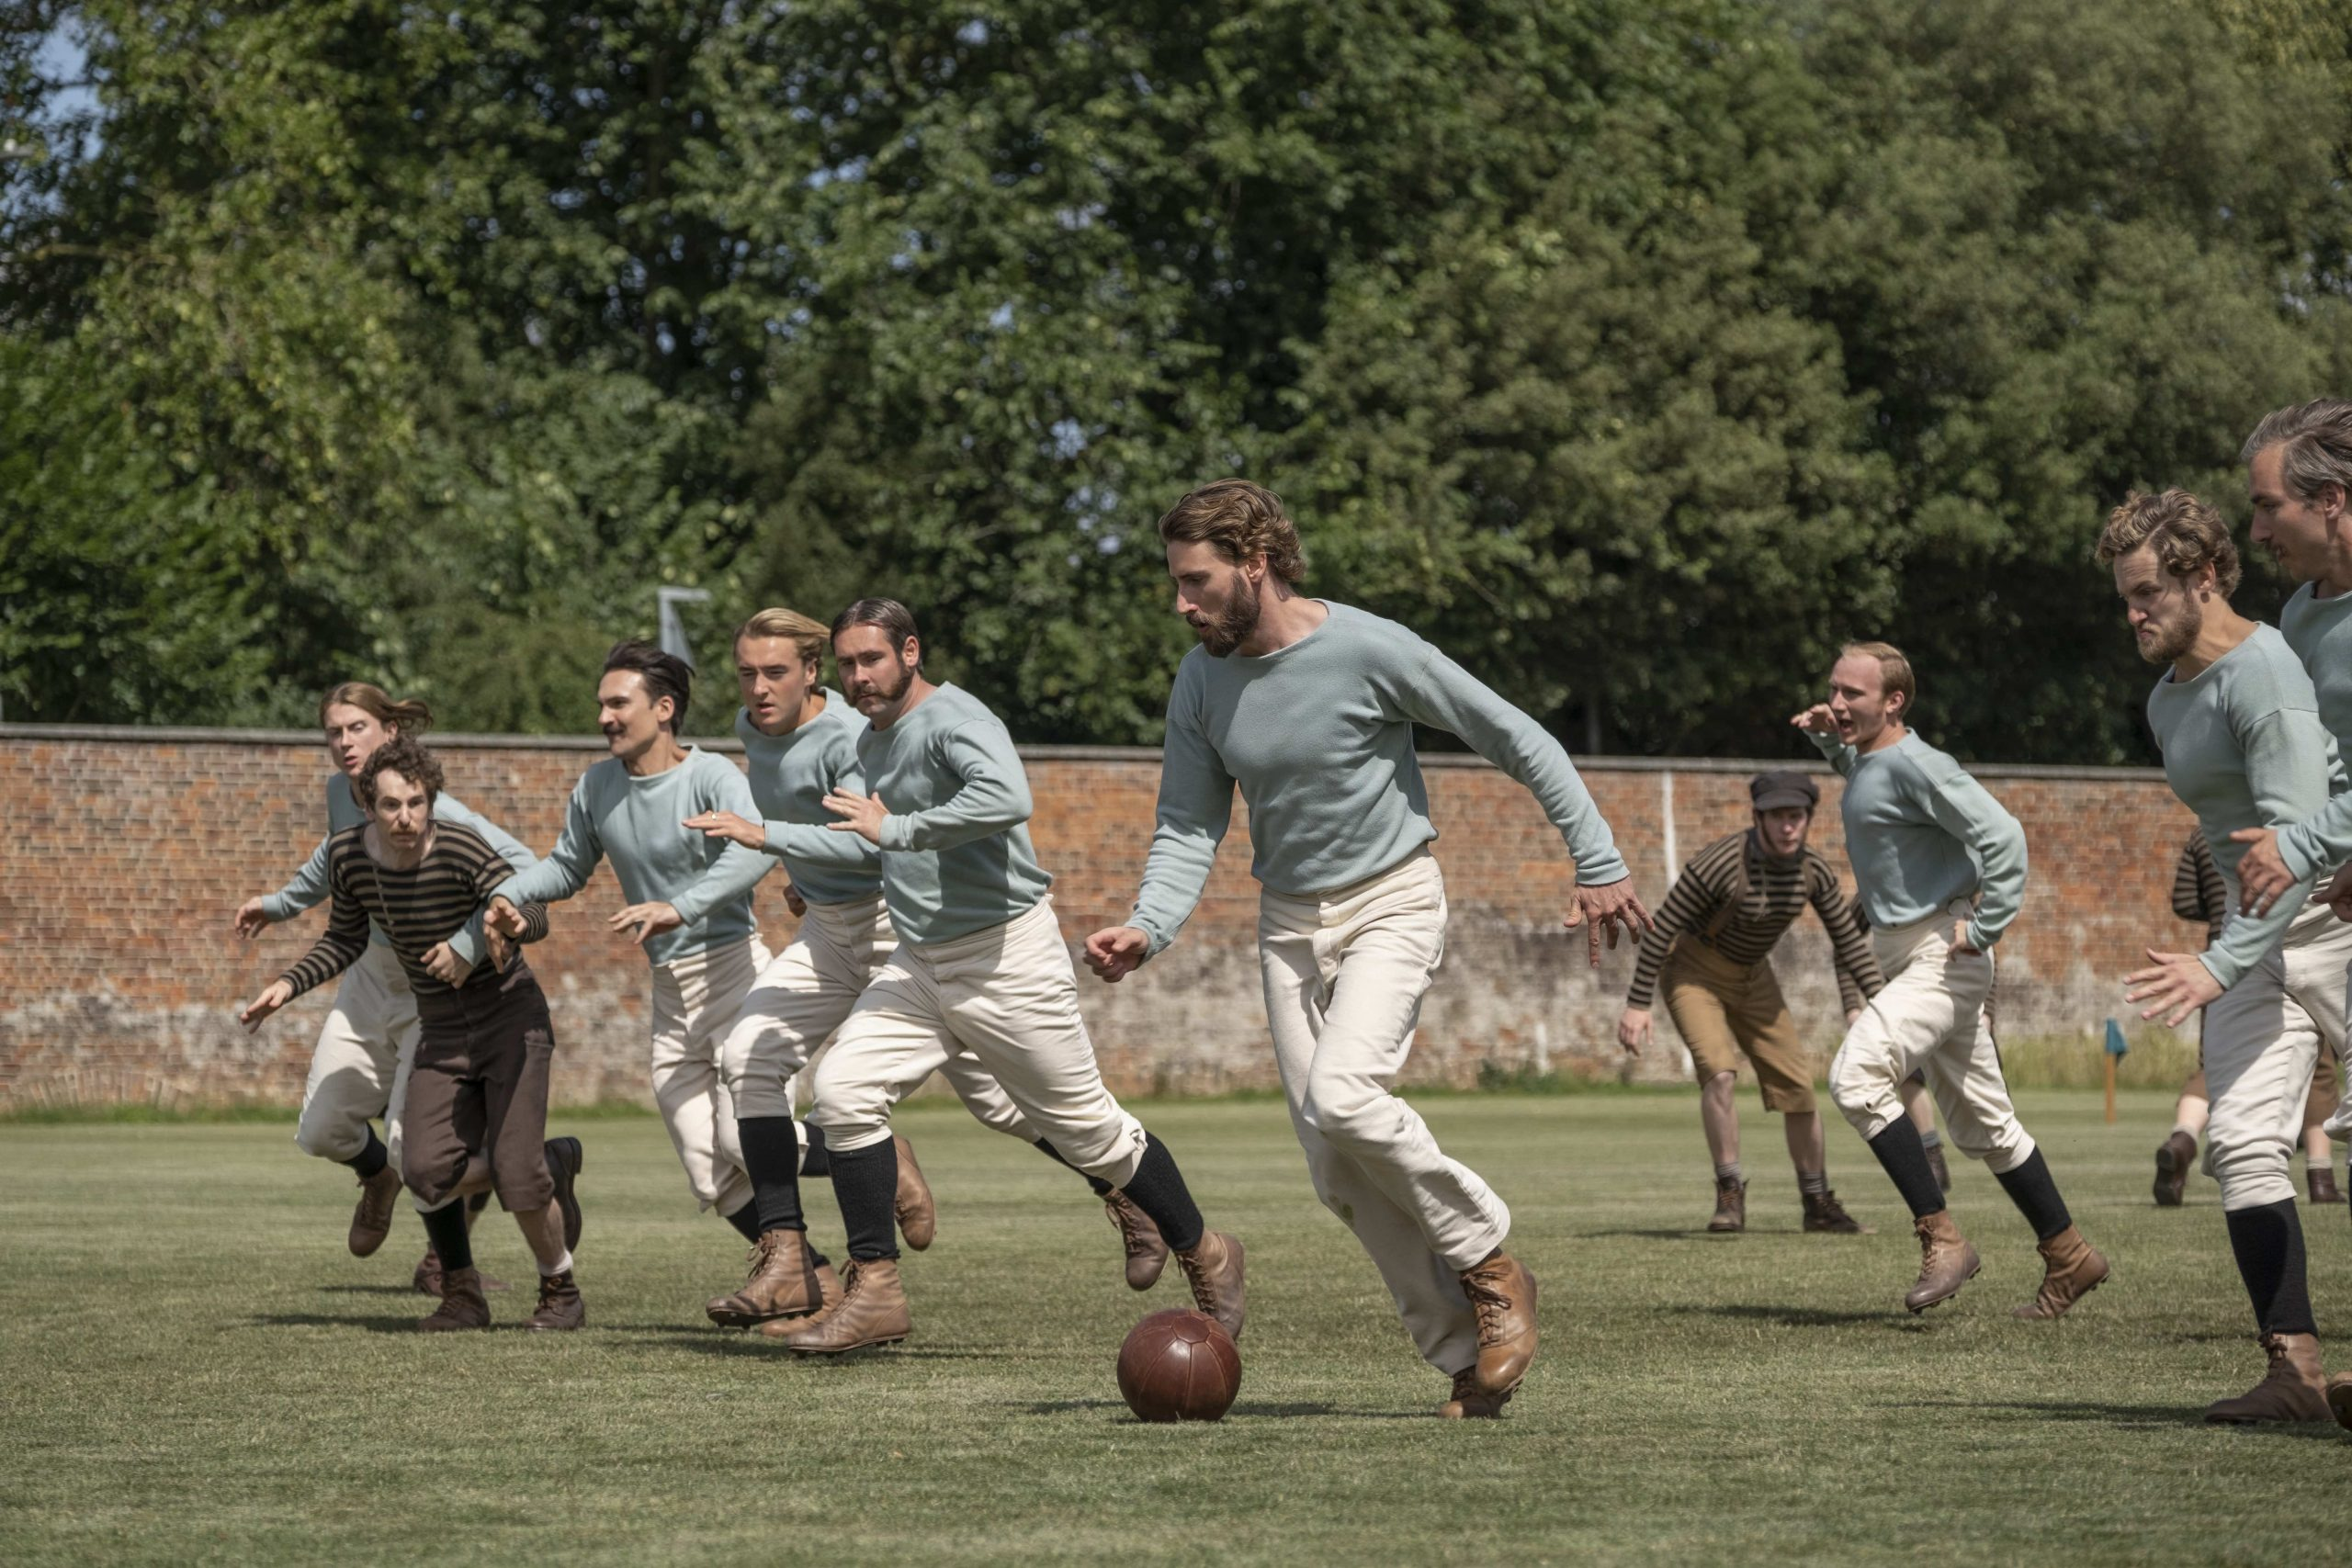 Men playing soccer in 'The English Game'